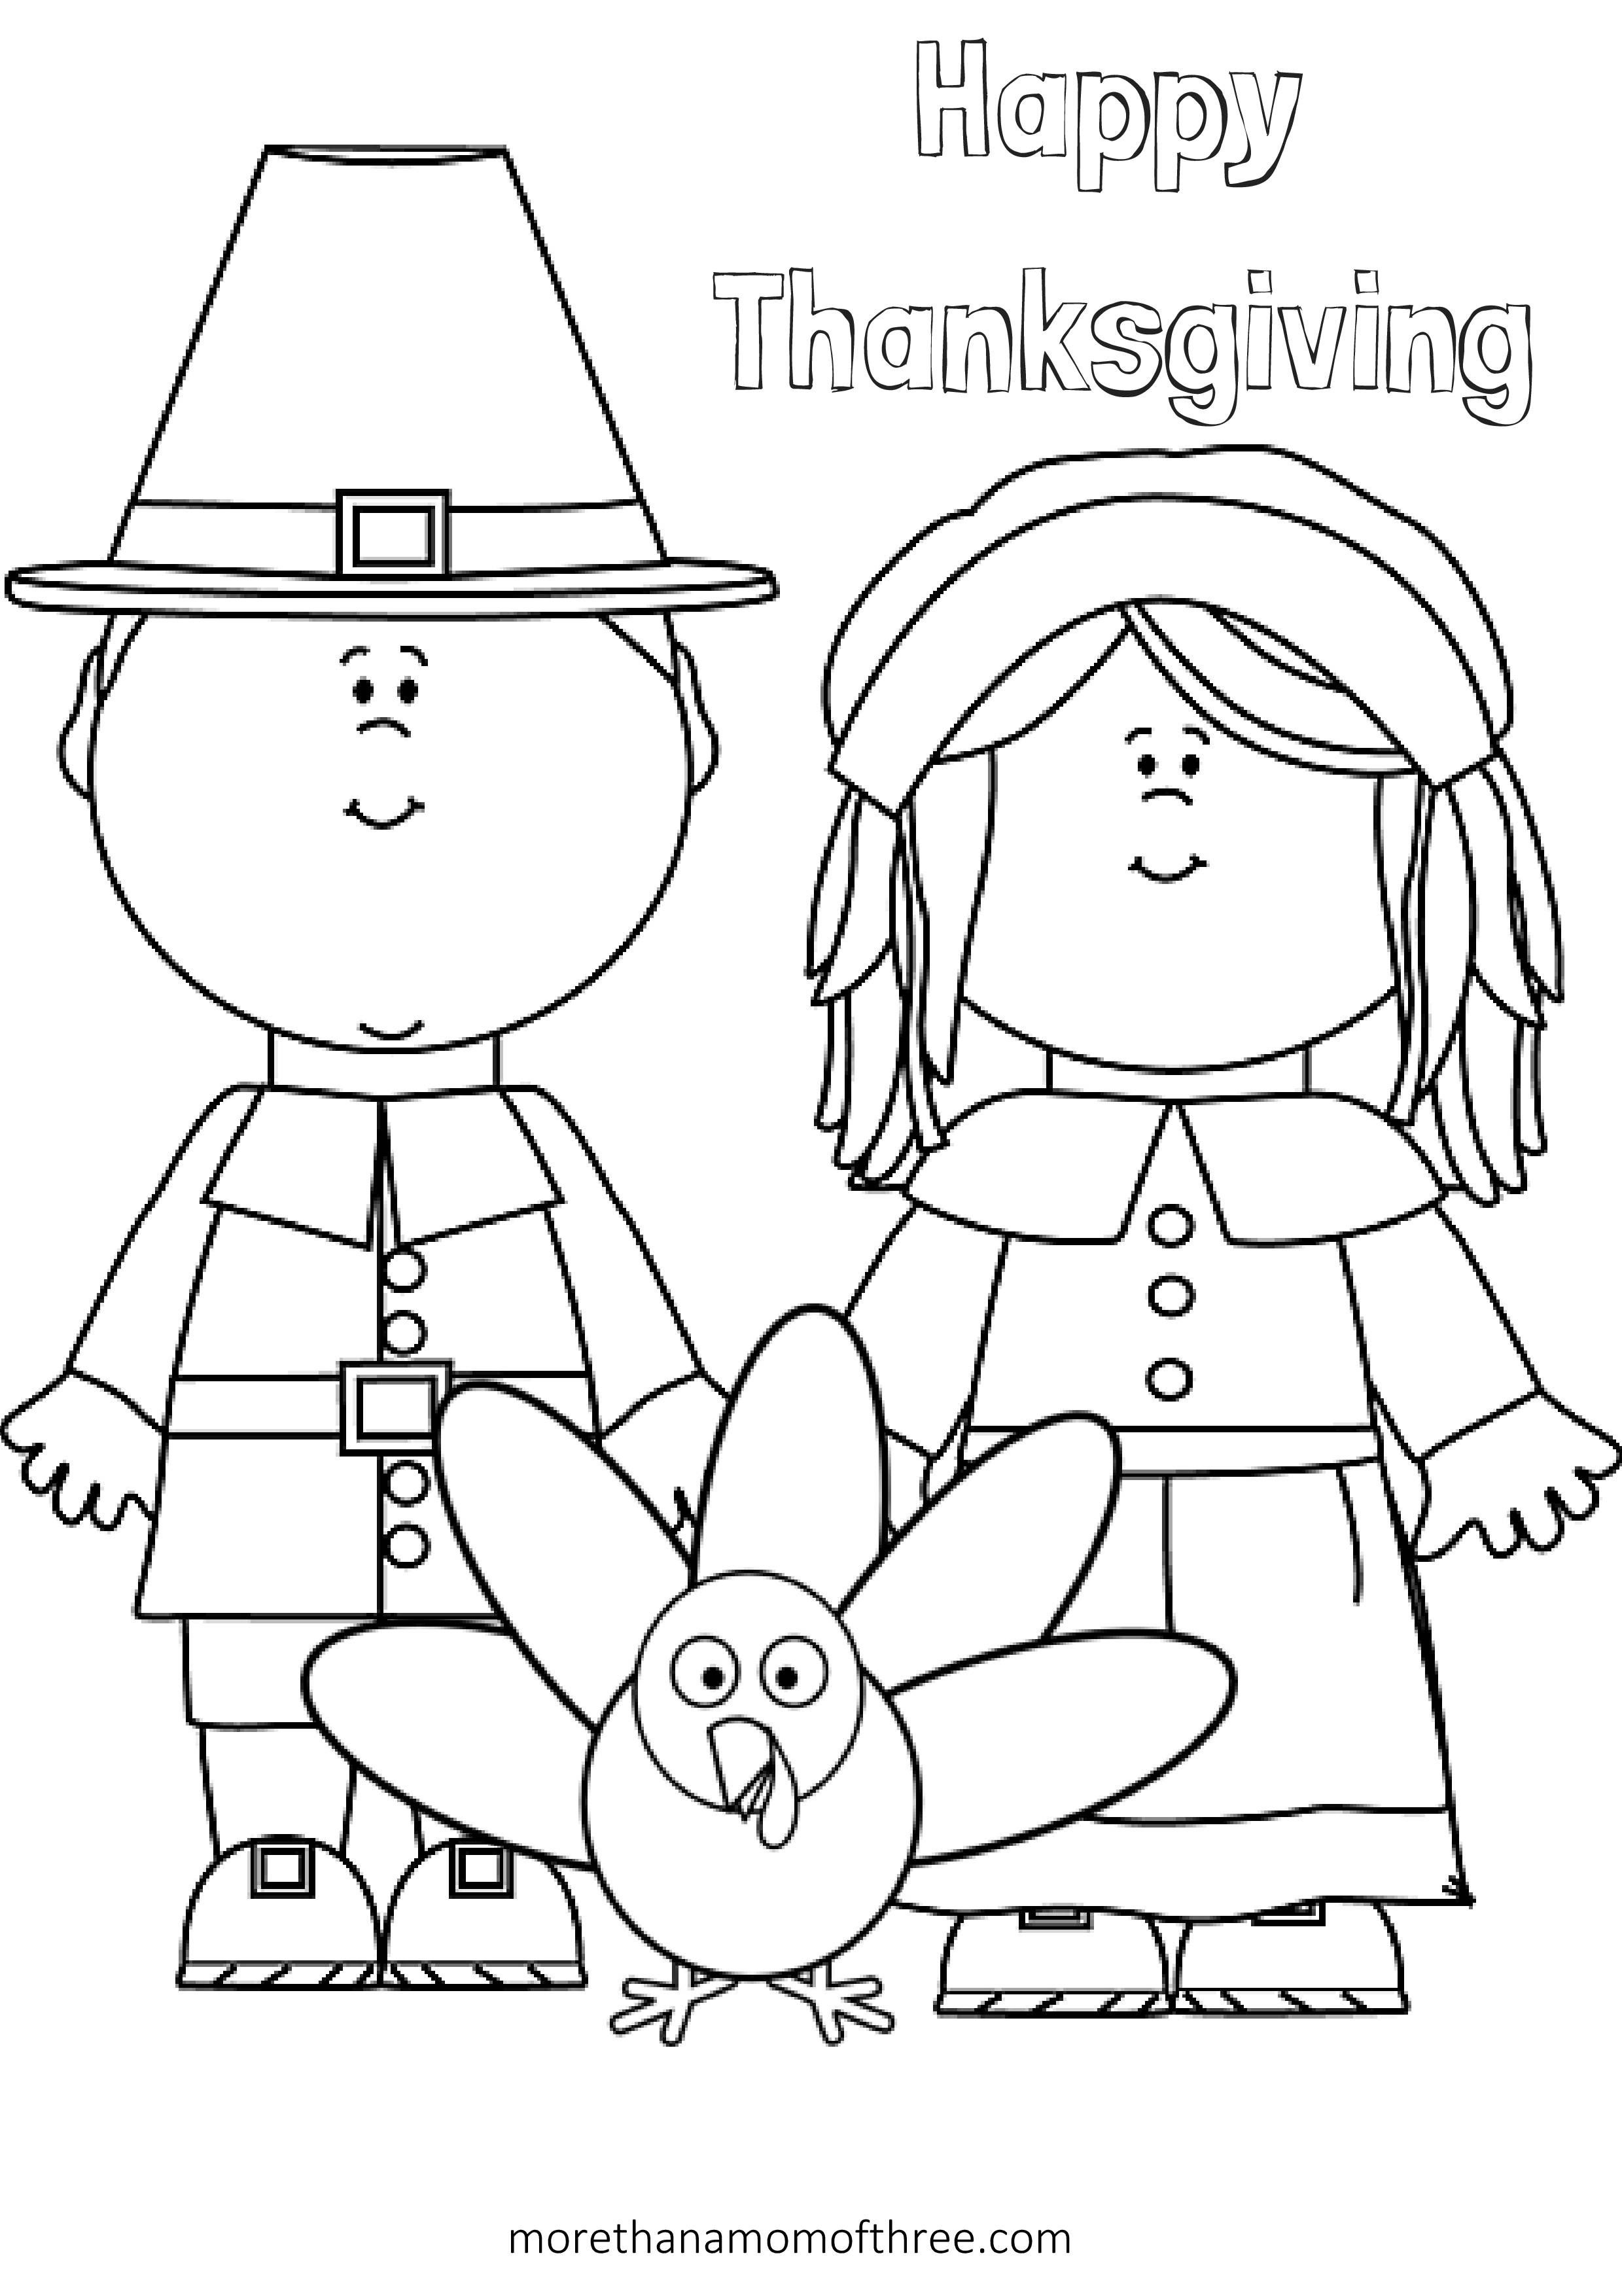 Free Thanksgiving Coloring Pages Printables For Kids | Thanksgiving - Free Printable Thanksgiving Crafts For Kids